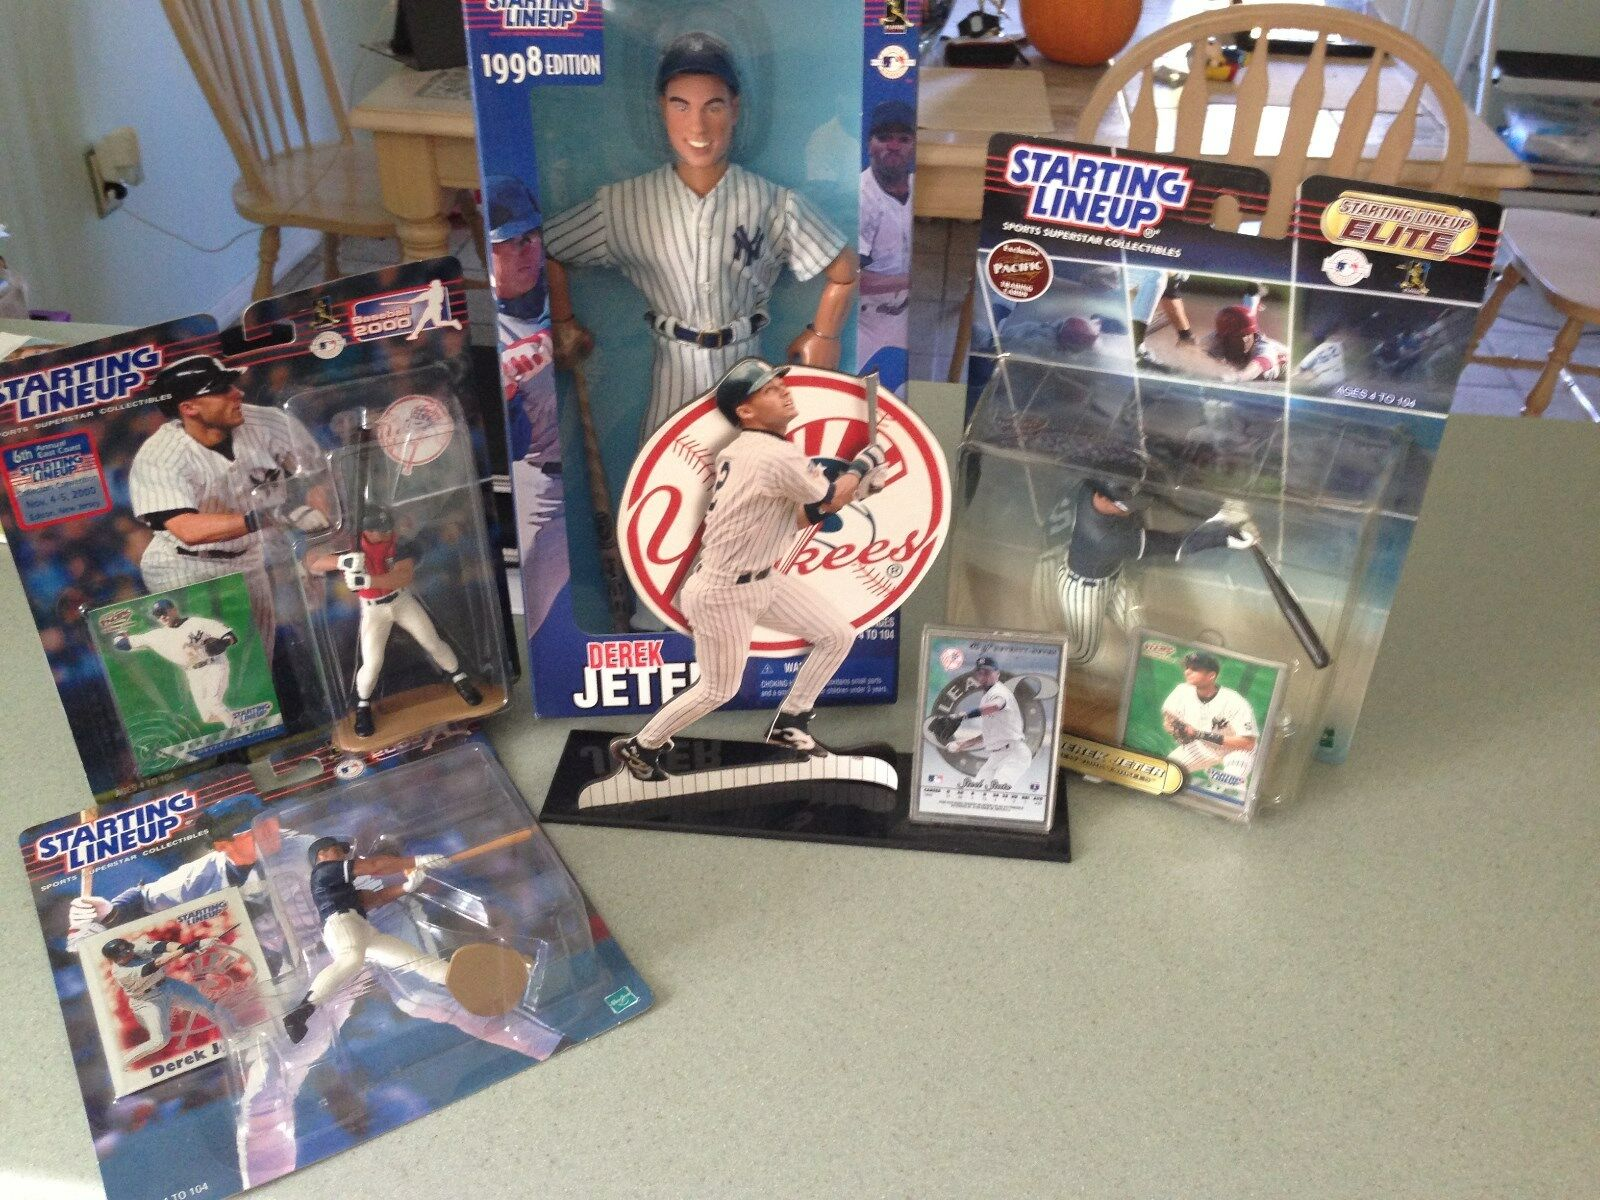 Derek Jeter SL action figures 4 MIB